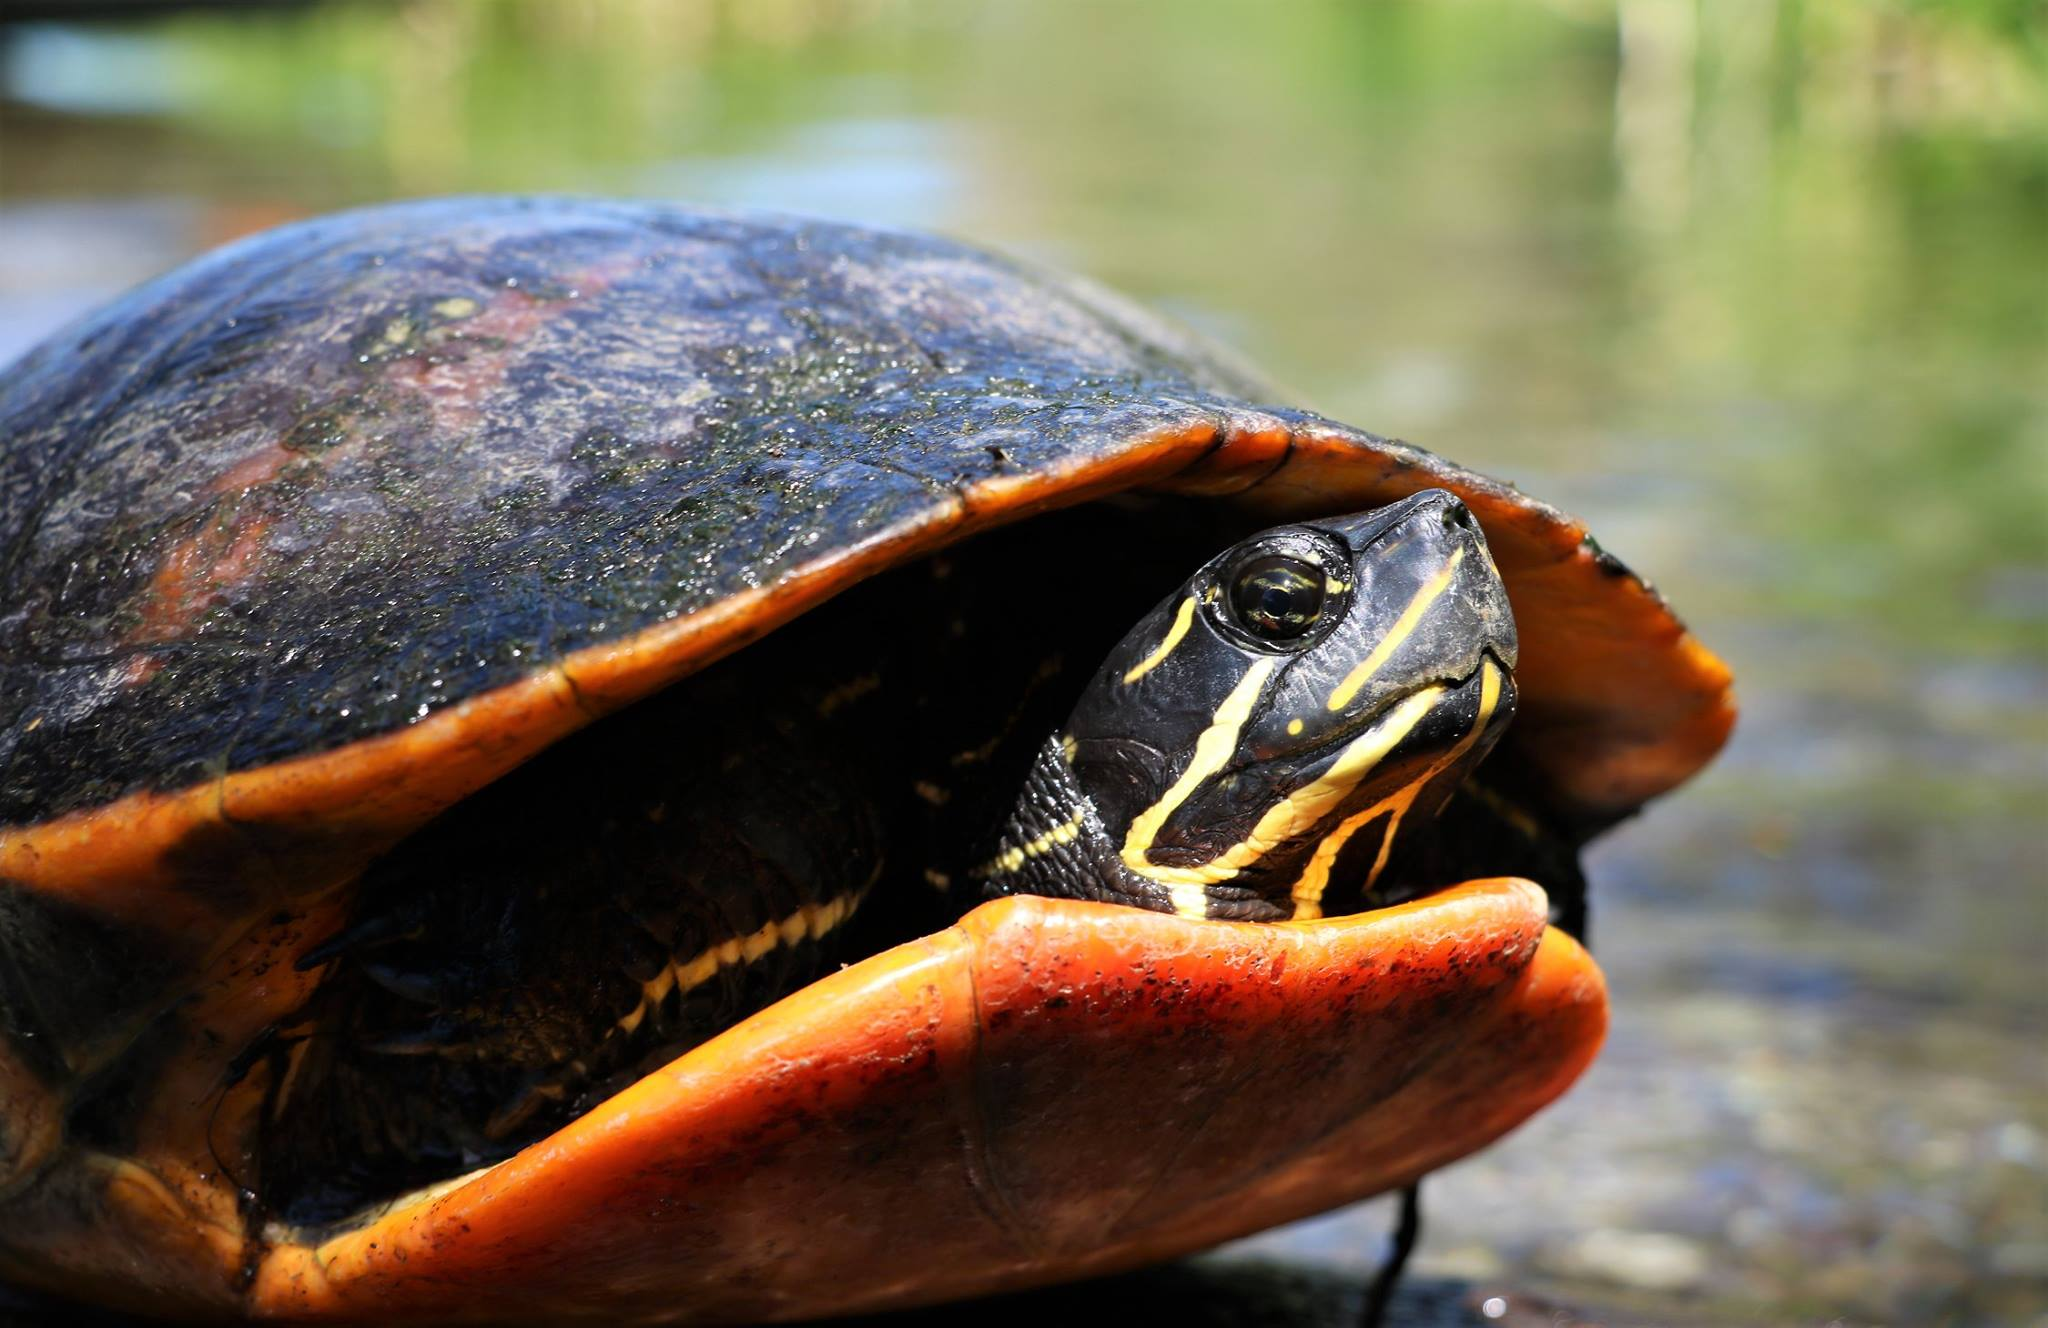 The fifth species of The Big Turtle Year, a large, adult female Florida red-bellied cooter ( Pseudemys nelsoni ), at Ichetucknee Springs State Park (Columbia County, Florida). Note the cusp on the upper jaw, a distinguishing characteristic not present in the other two species of cooters that occur in Florida. Photograph by George L. Heinrich.